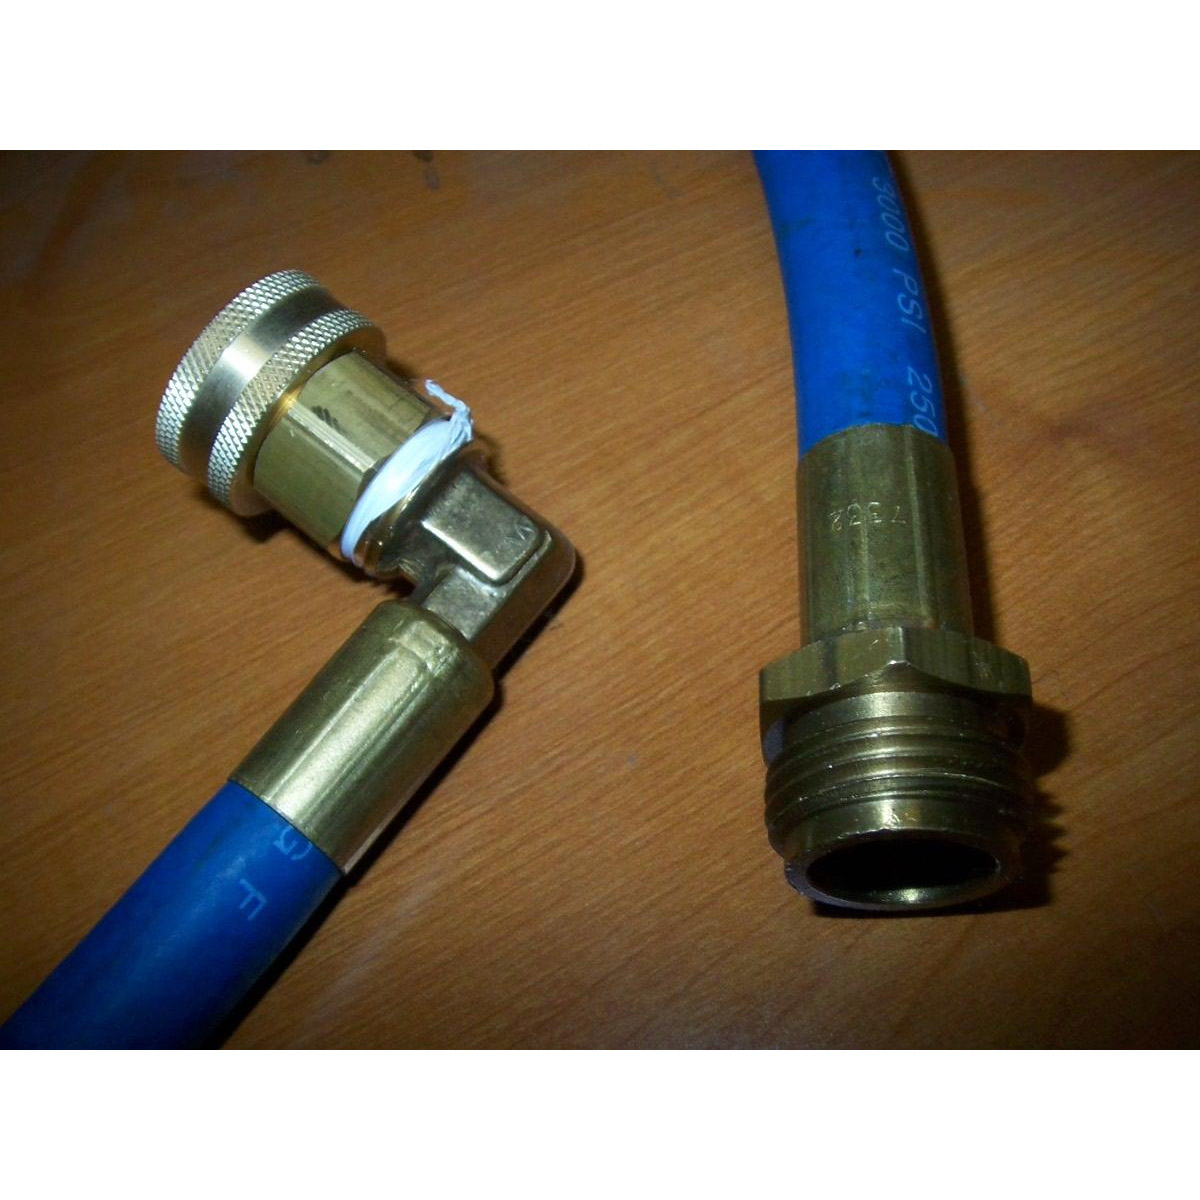 Clean Storm Auto Fill Hose 6 ft By 1/2 Inch ID with 90 degree Fitting for Hot water Garden Hose 20130305